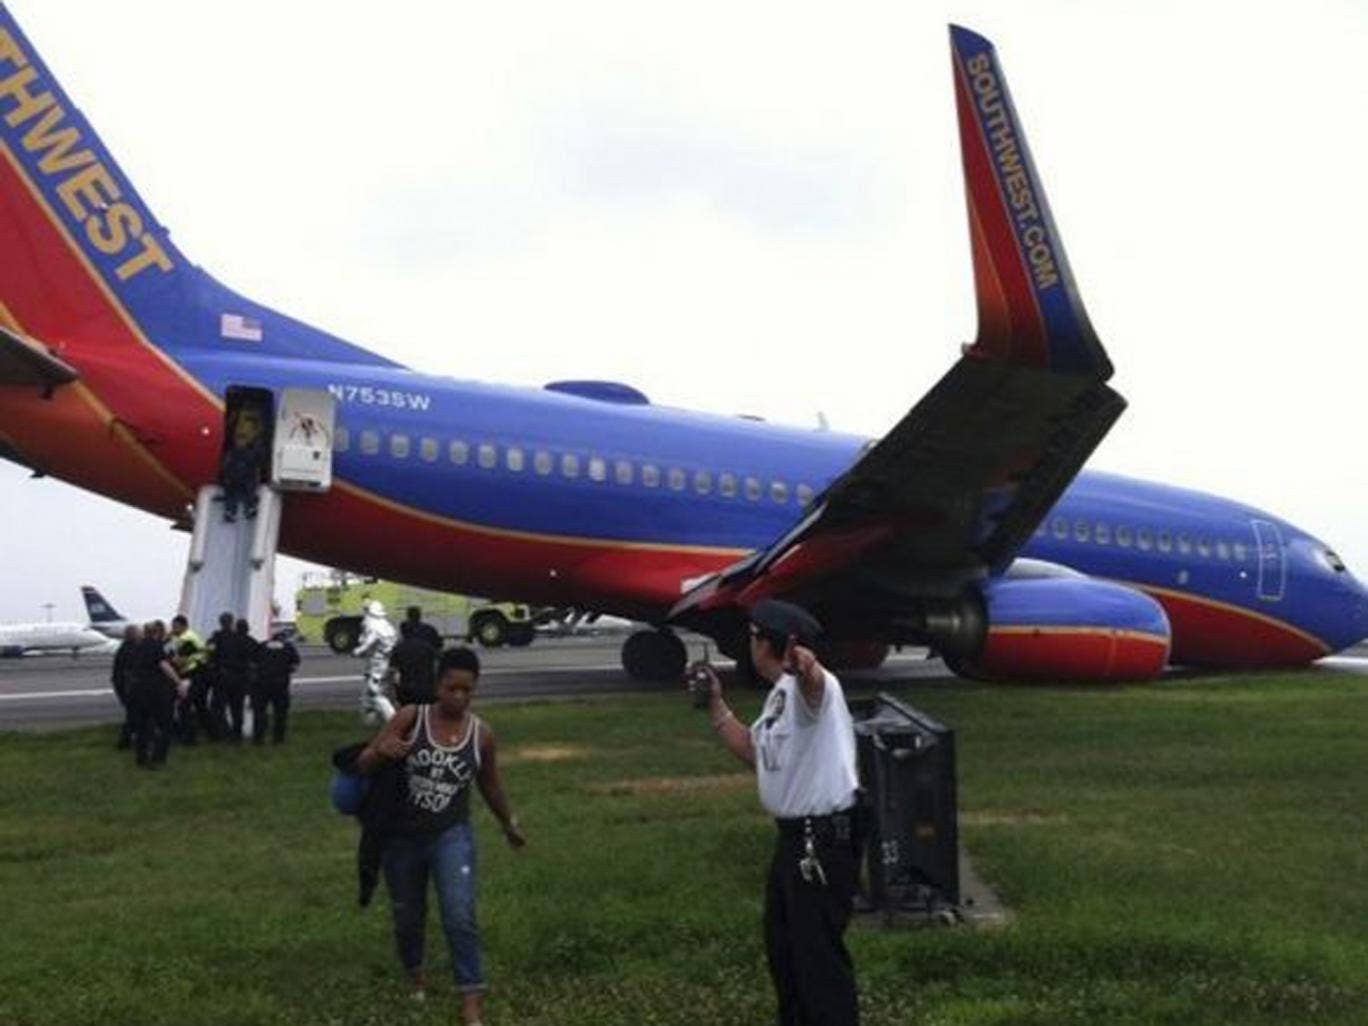 The Southwest Airlines plane sits on the tarmac as passengers disembark at LaGuardia airport, New York